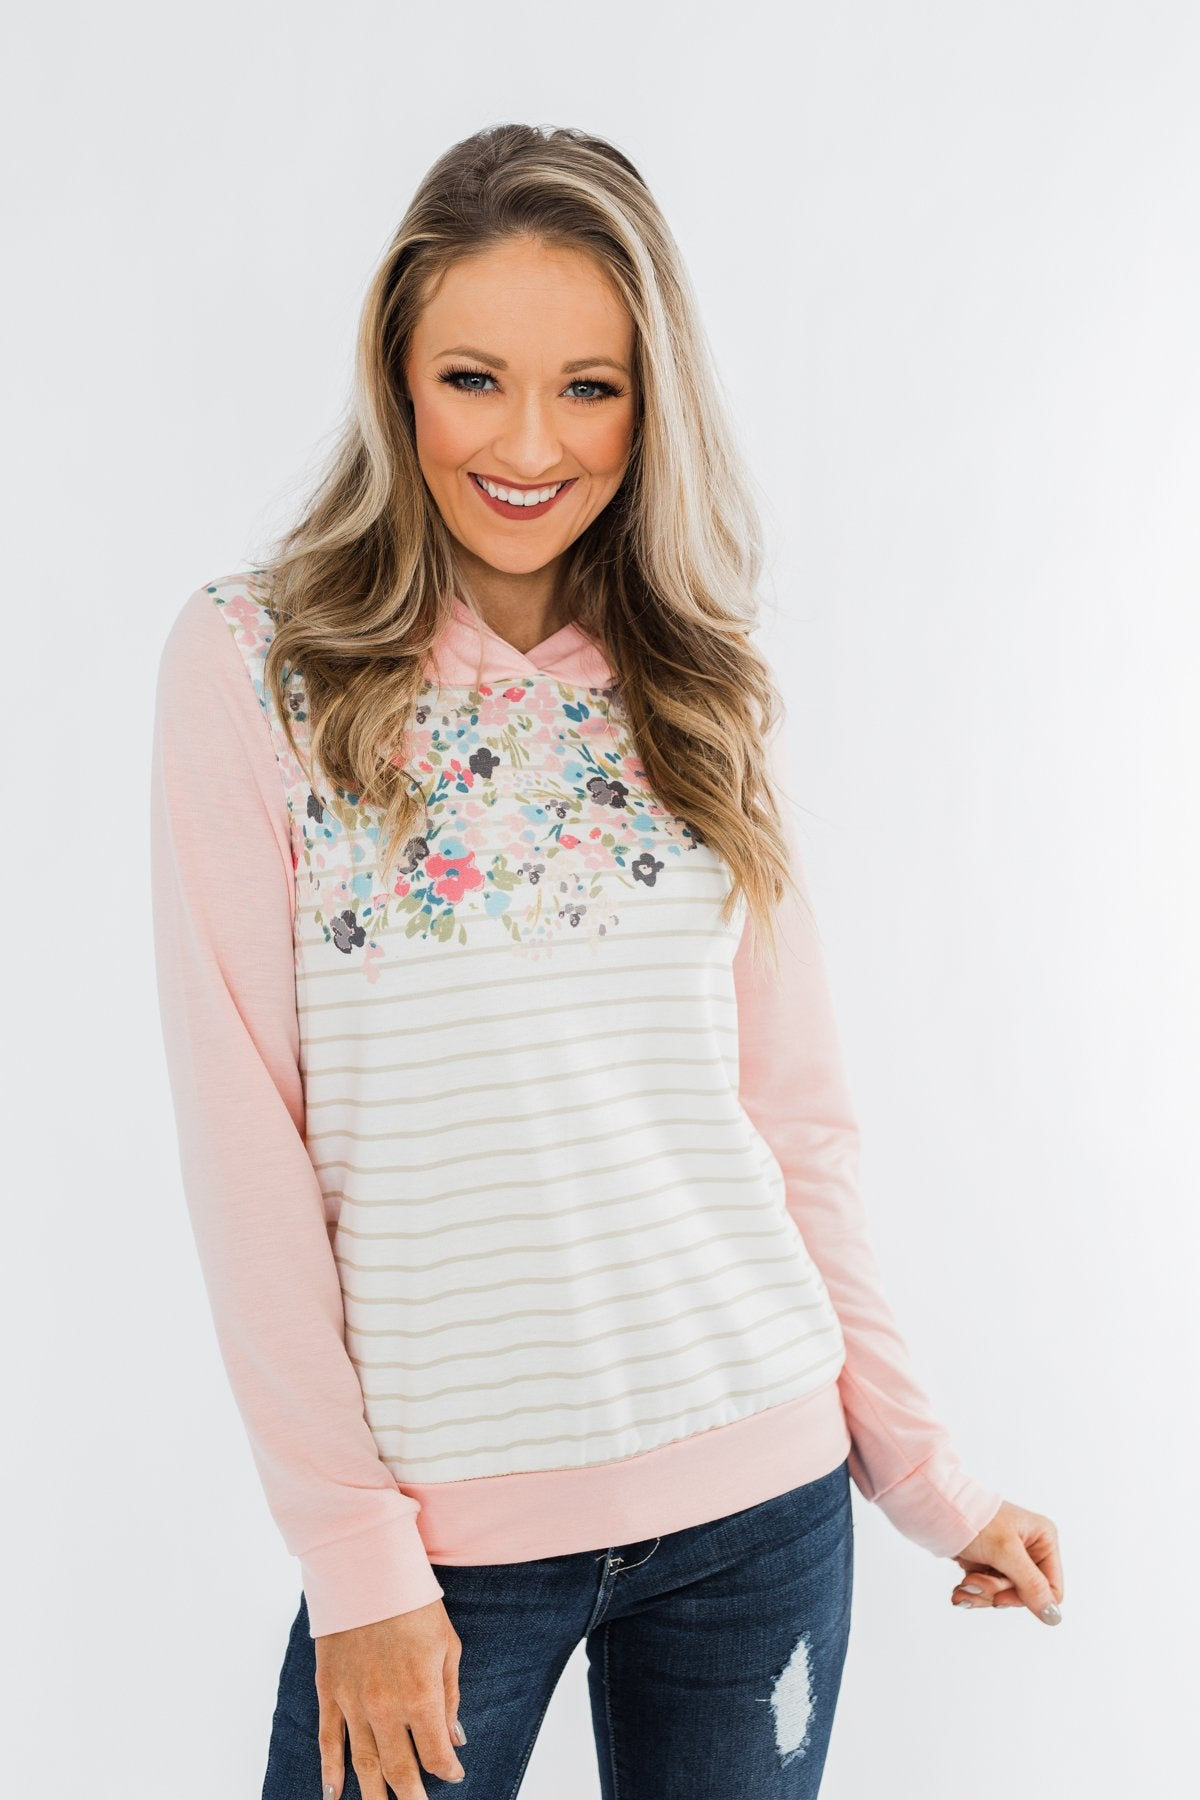 Simple Pleasures Floral & Stripes Hoodie- Light Peach